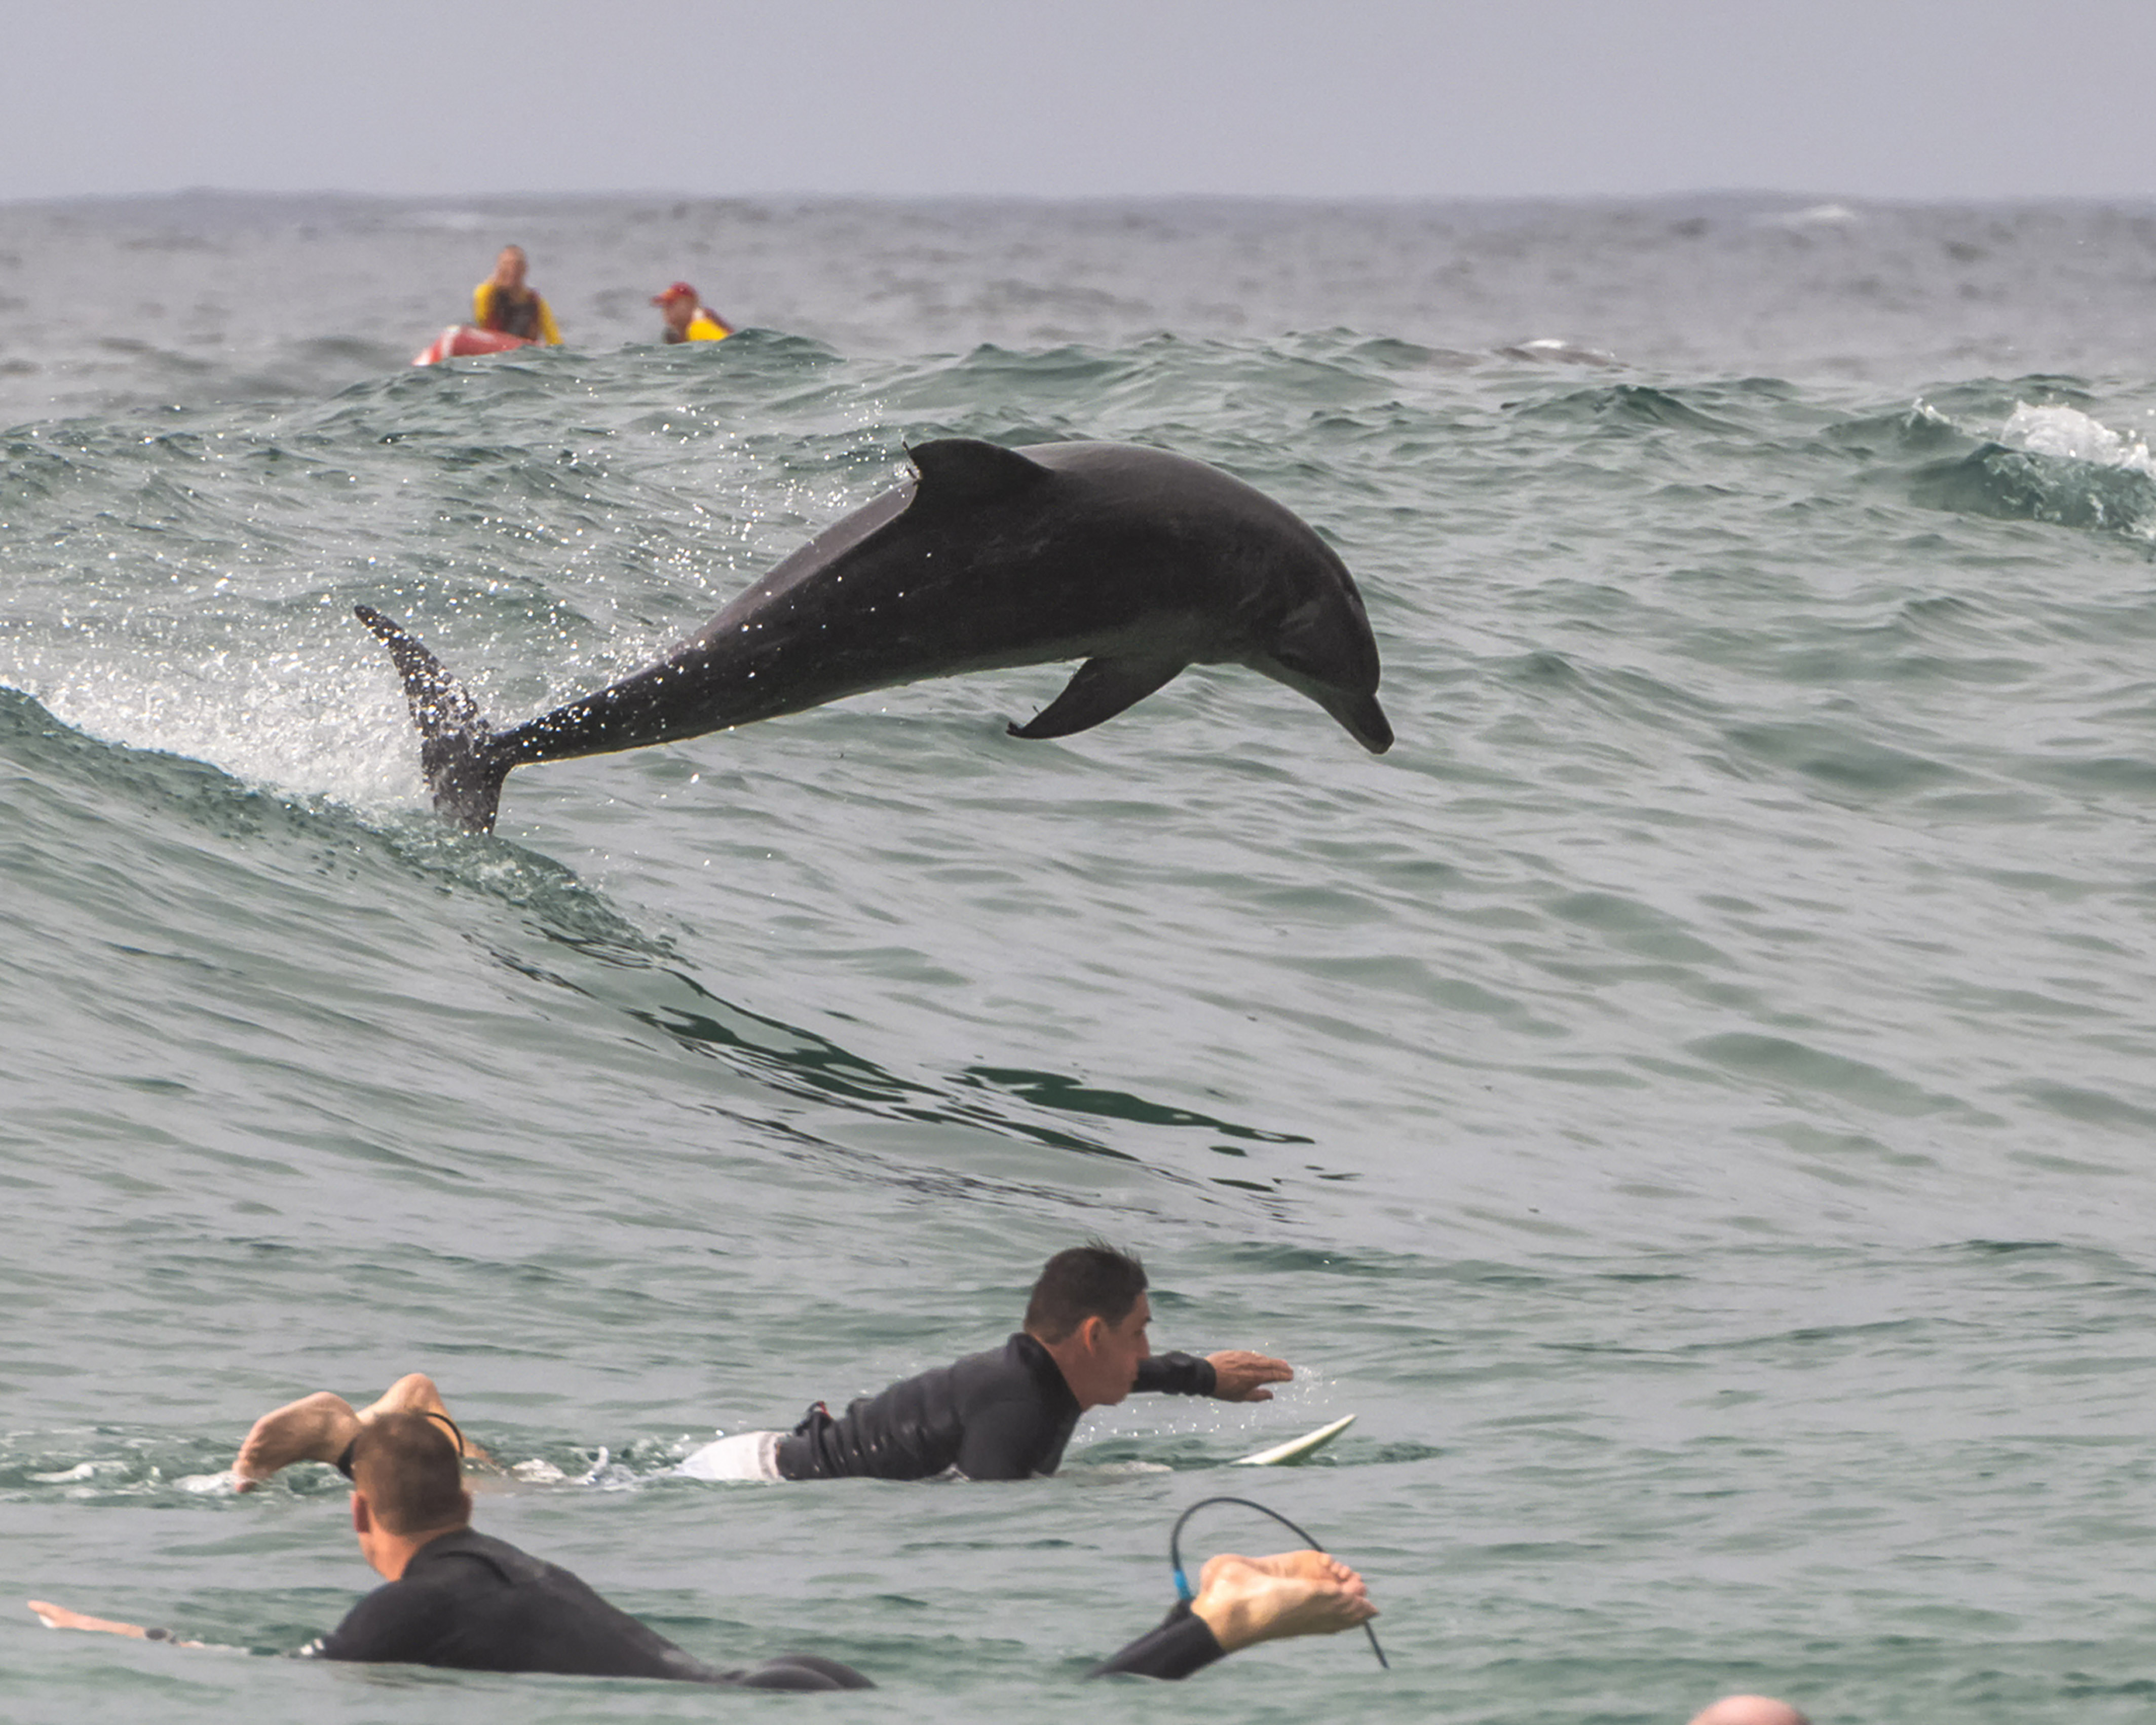 DOL-FUN AND GAMES! PLAYFUL DOLPHIN SHOWS OFF FIN-TASTIC SURFING SKILLS ALONGSIDE LOCALS Image